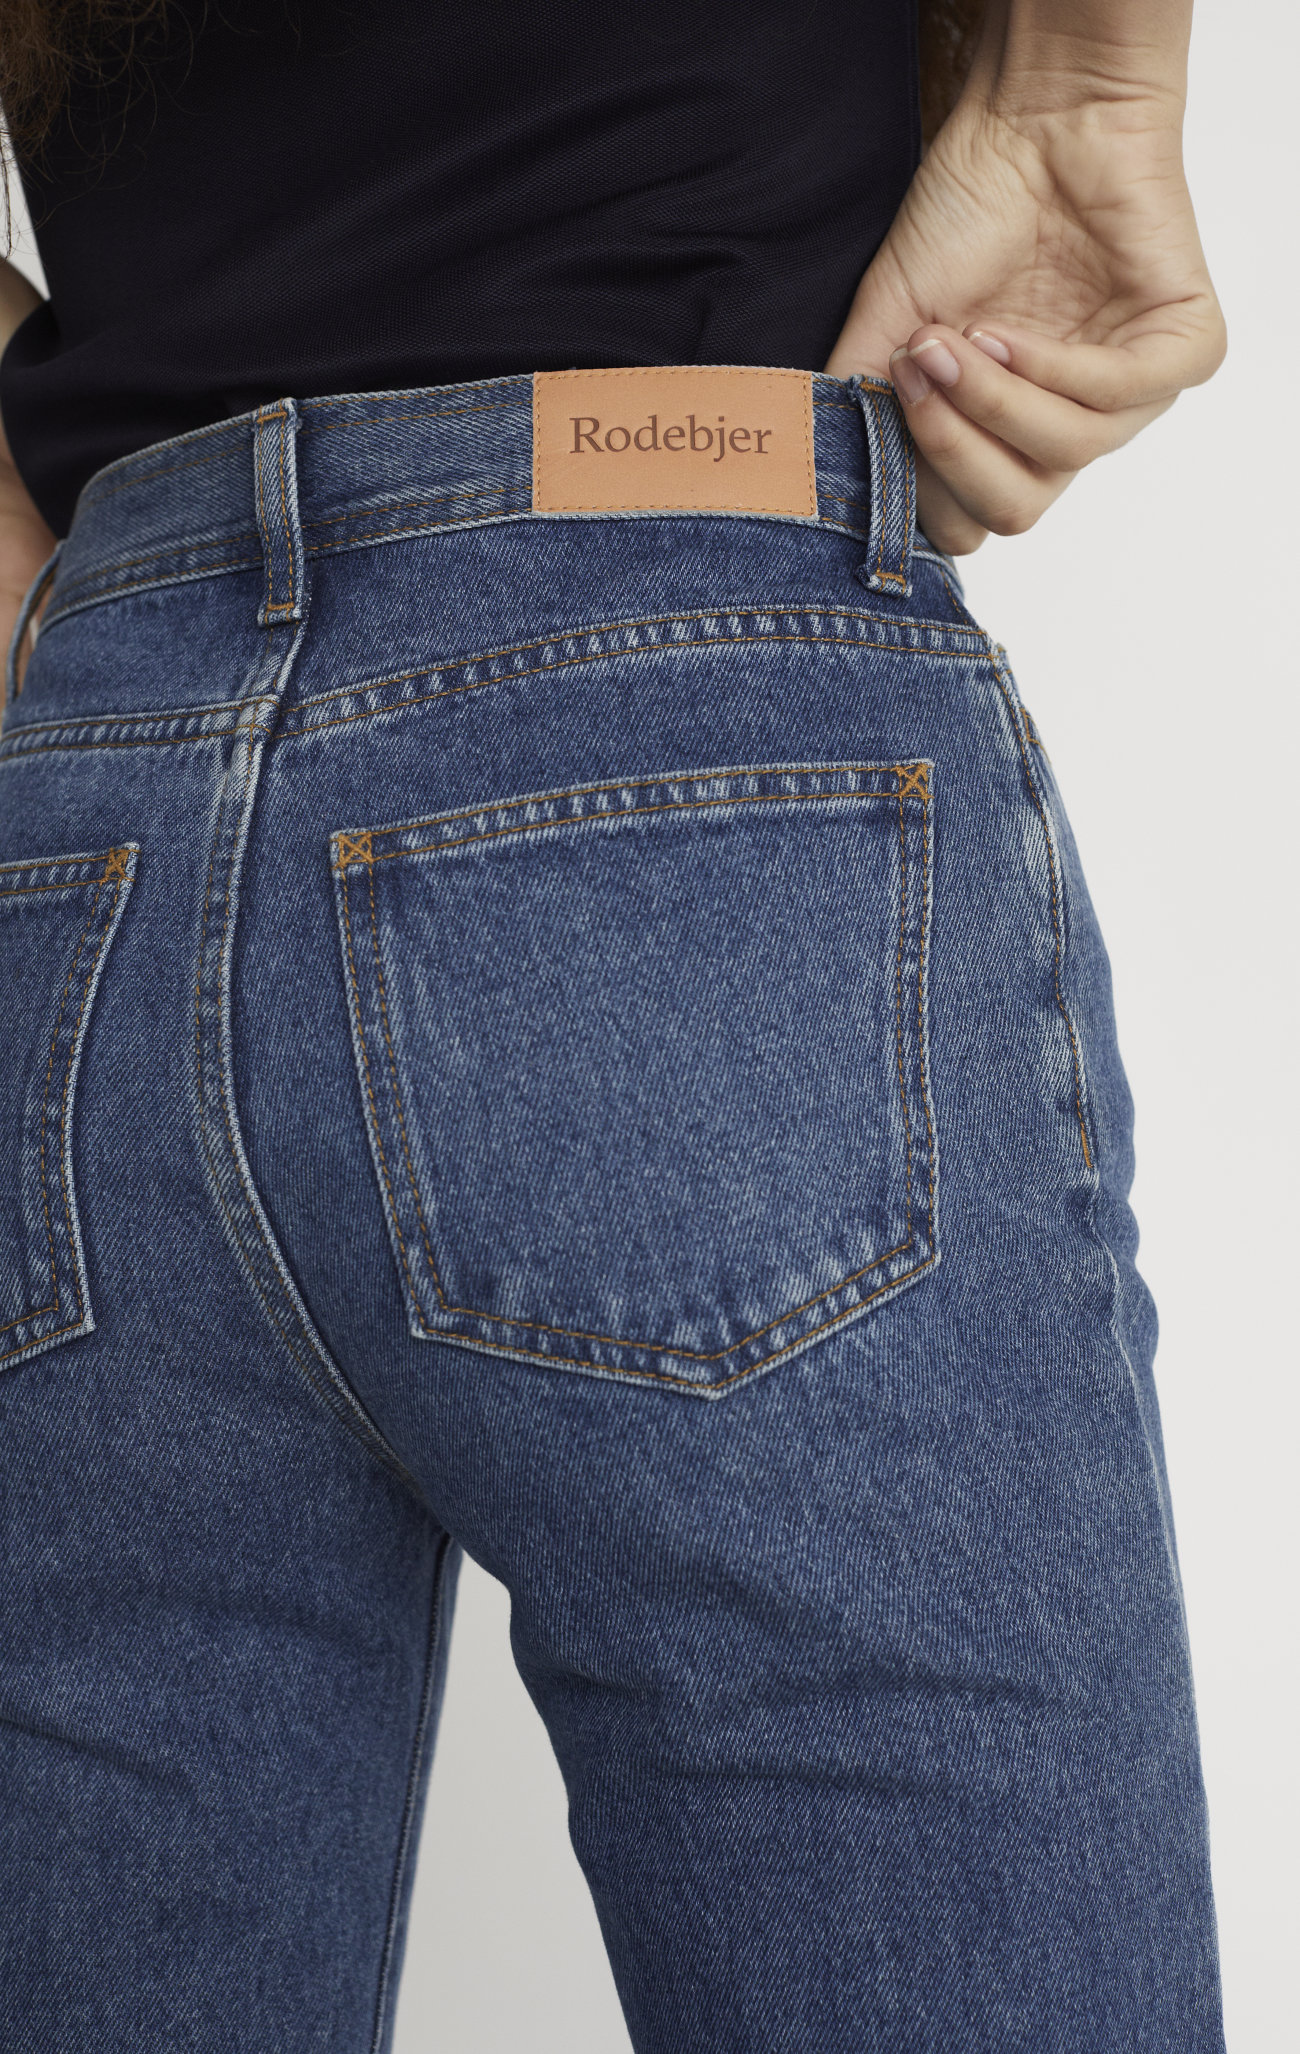 Rodebjer Jeans Susan